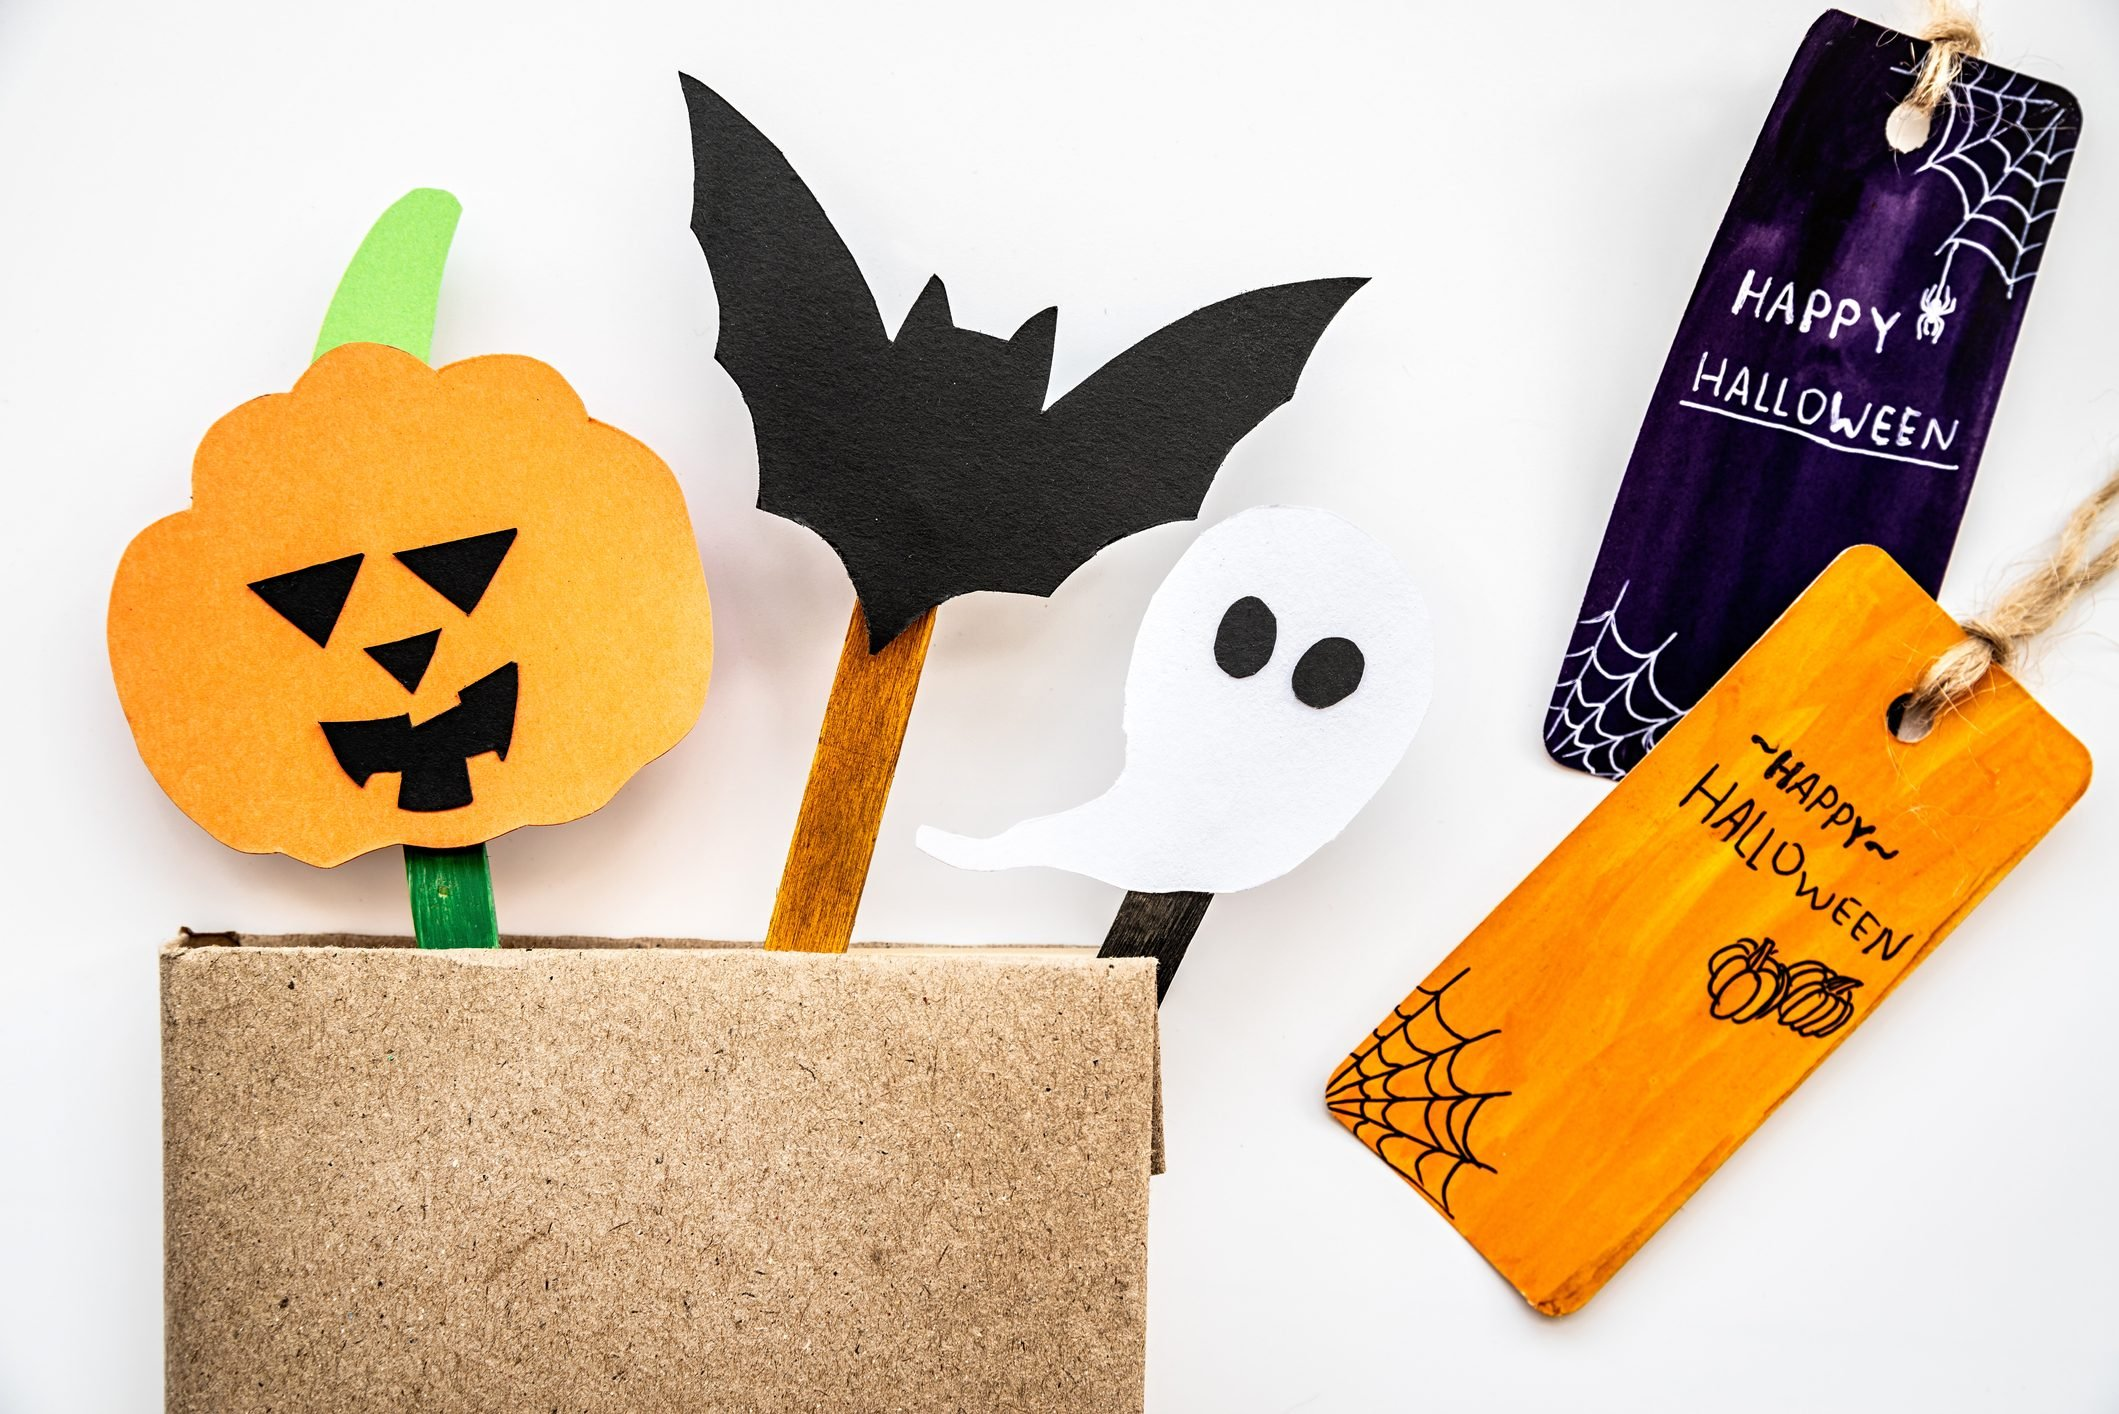 halloween hand made craft bookmars on craft sticks in a book with twopaper tags